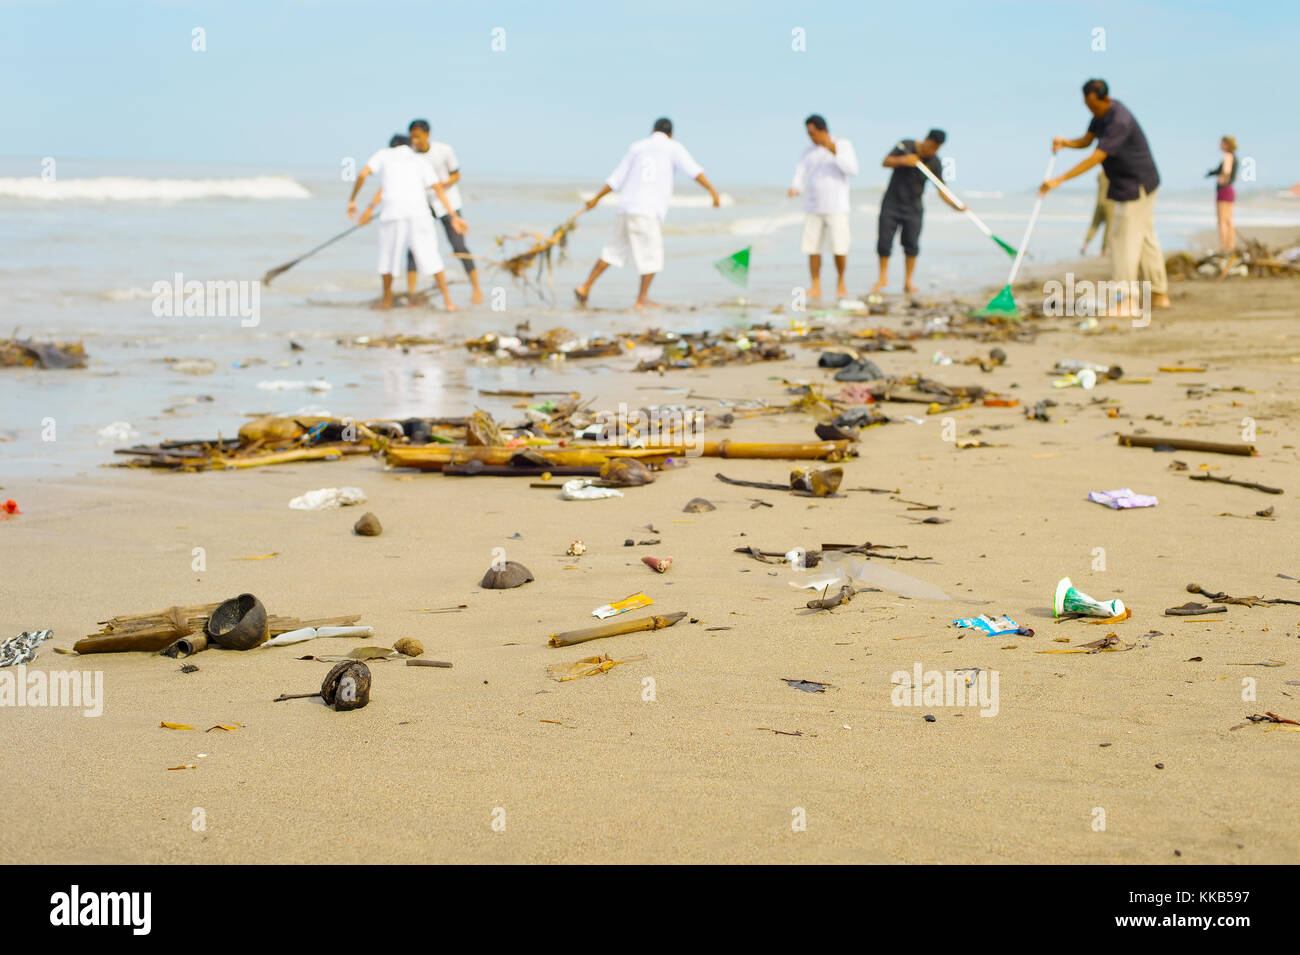 People cleaning trashy polluted with garbage ocean beach. Bali island, Indonesia - Stock Image